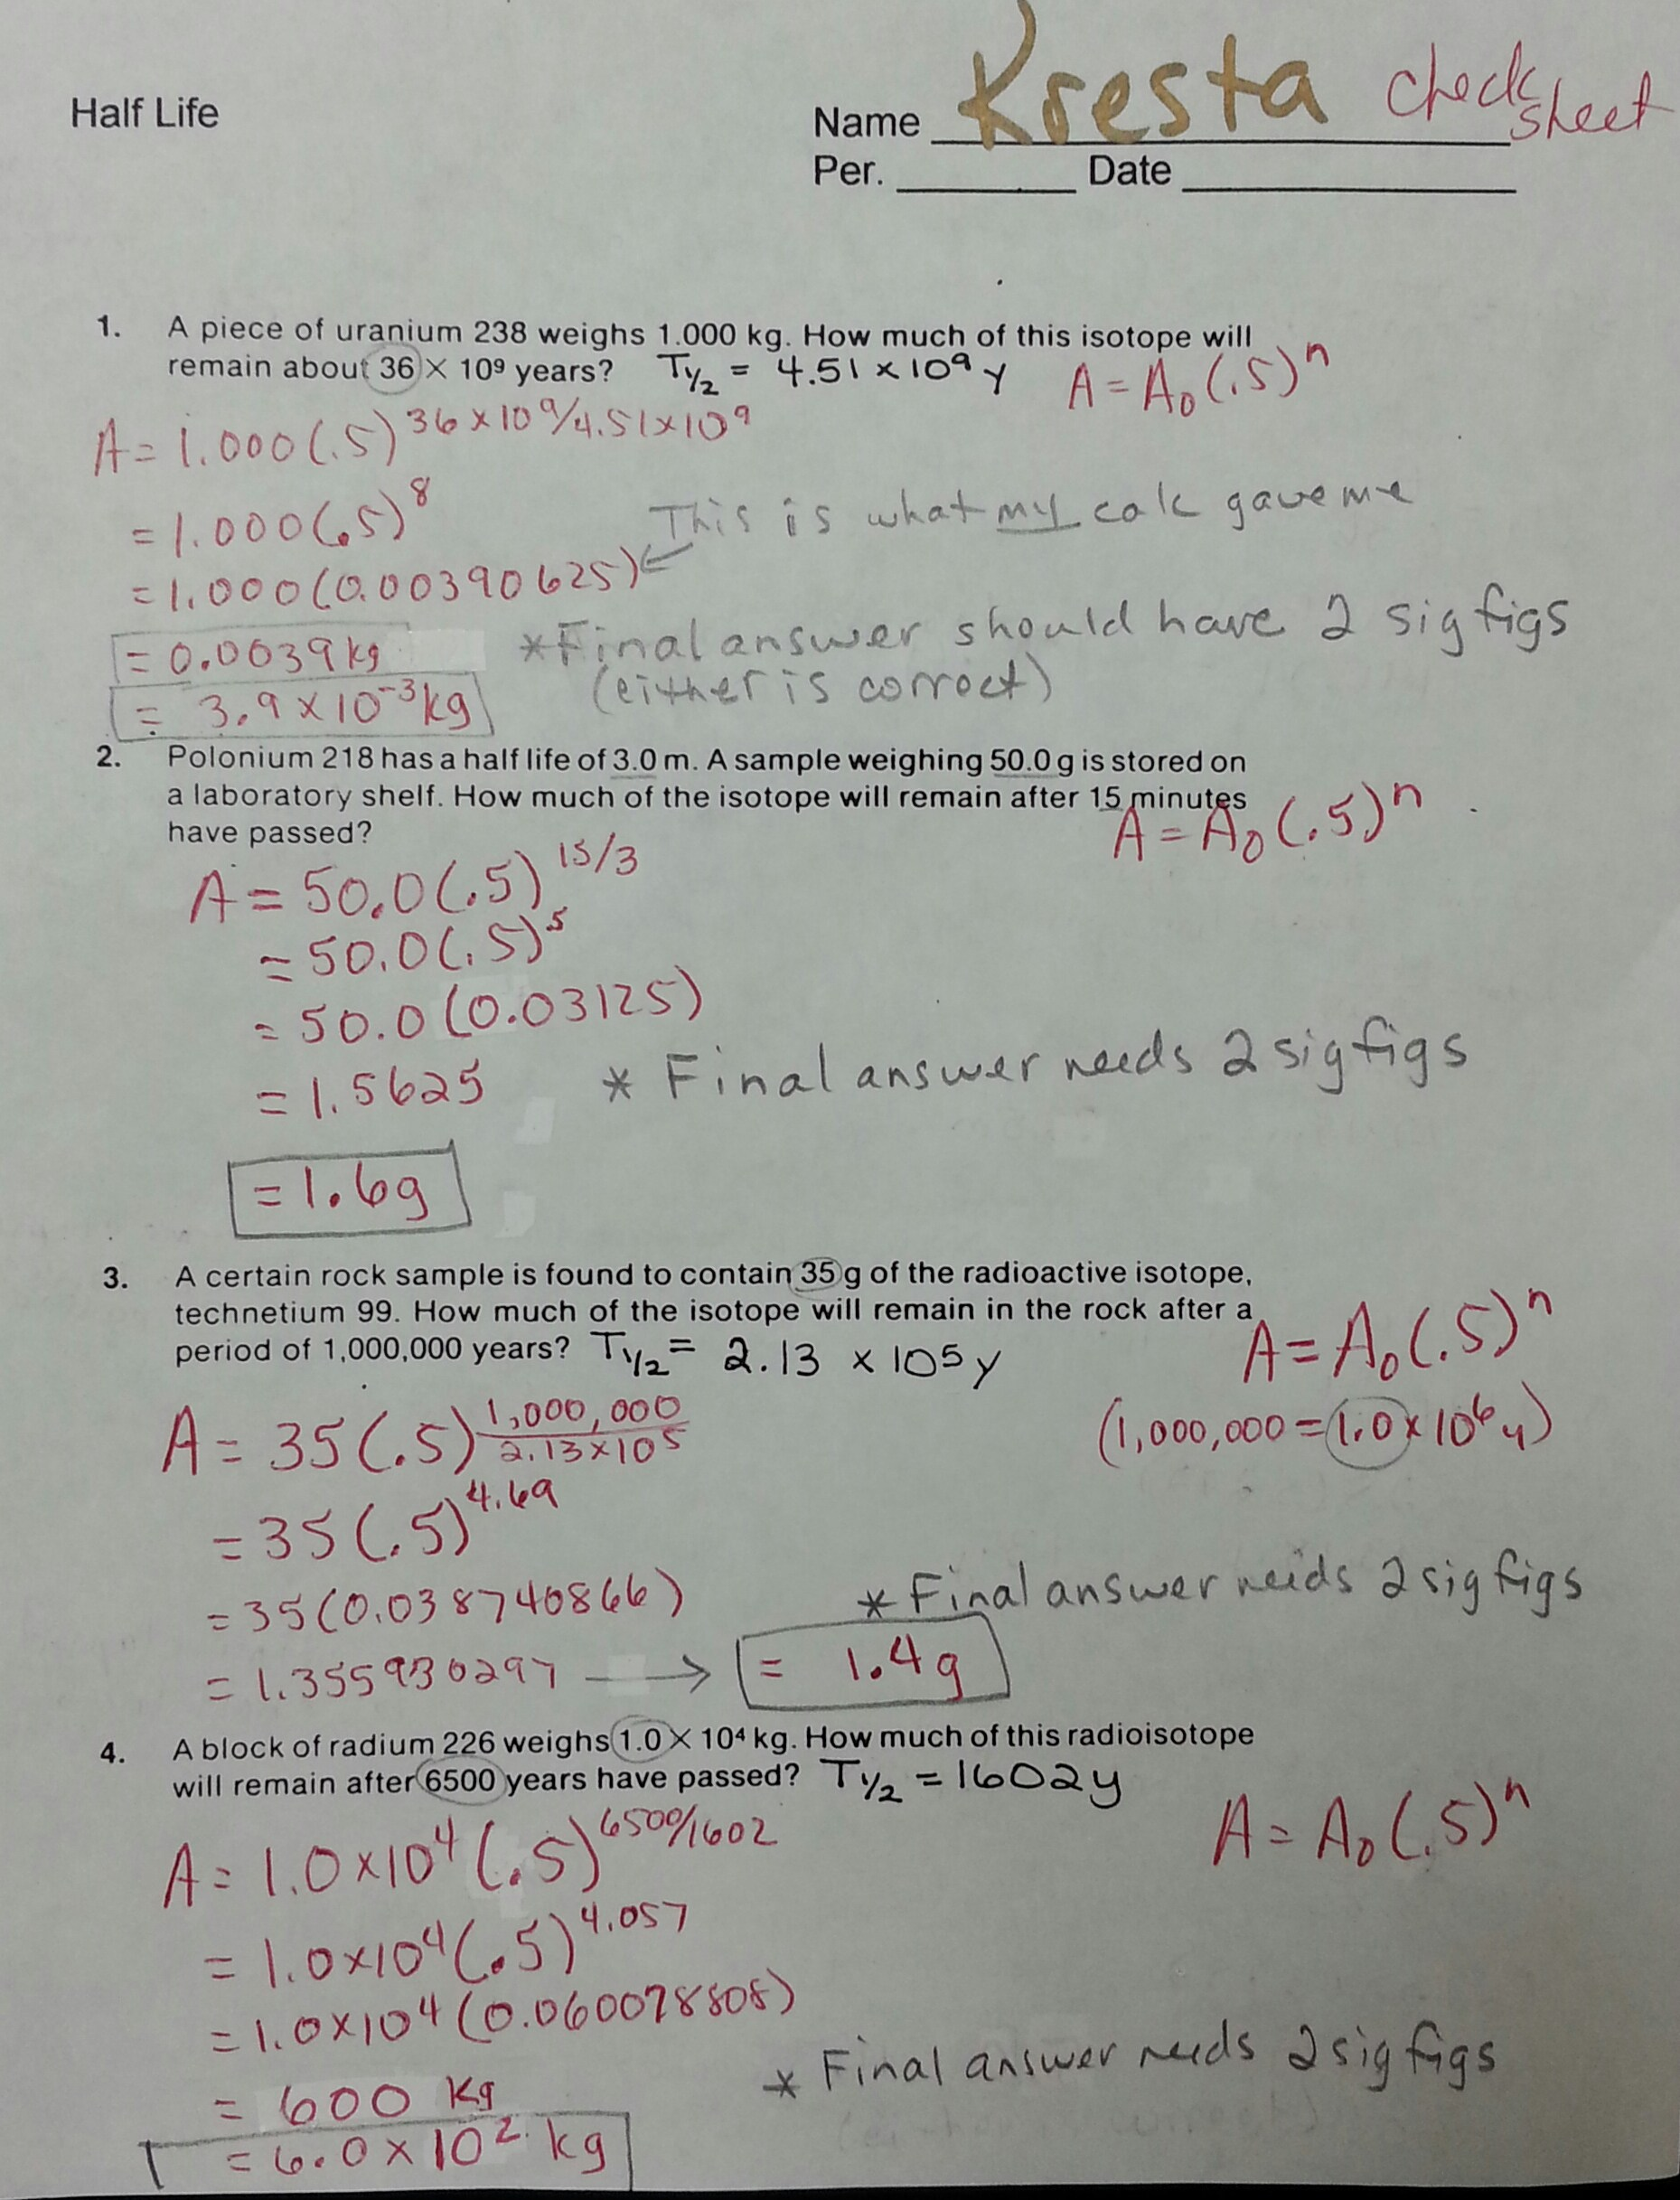 Half Life Of Radioactive Isotopes Worksheet Answers